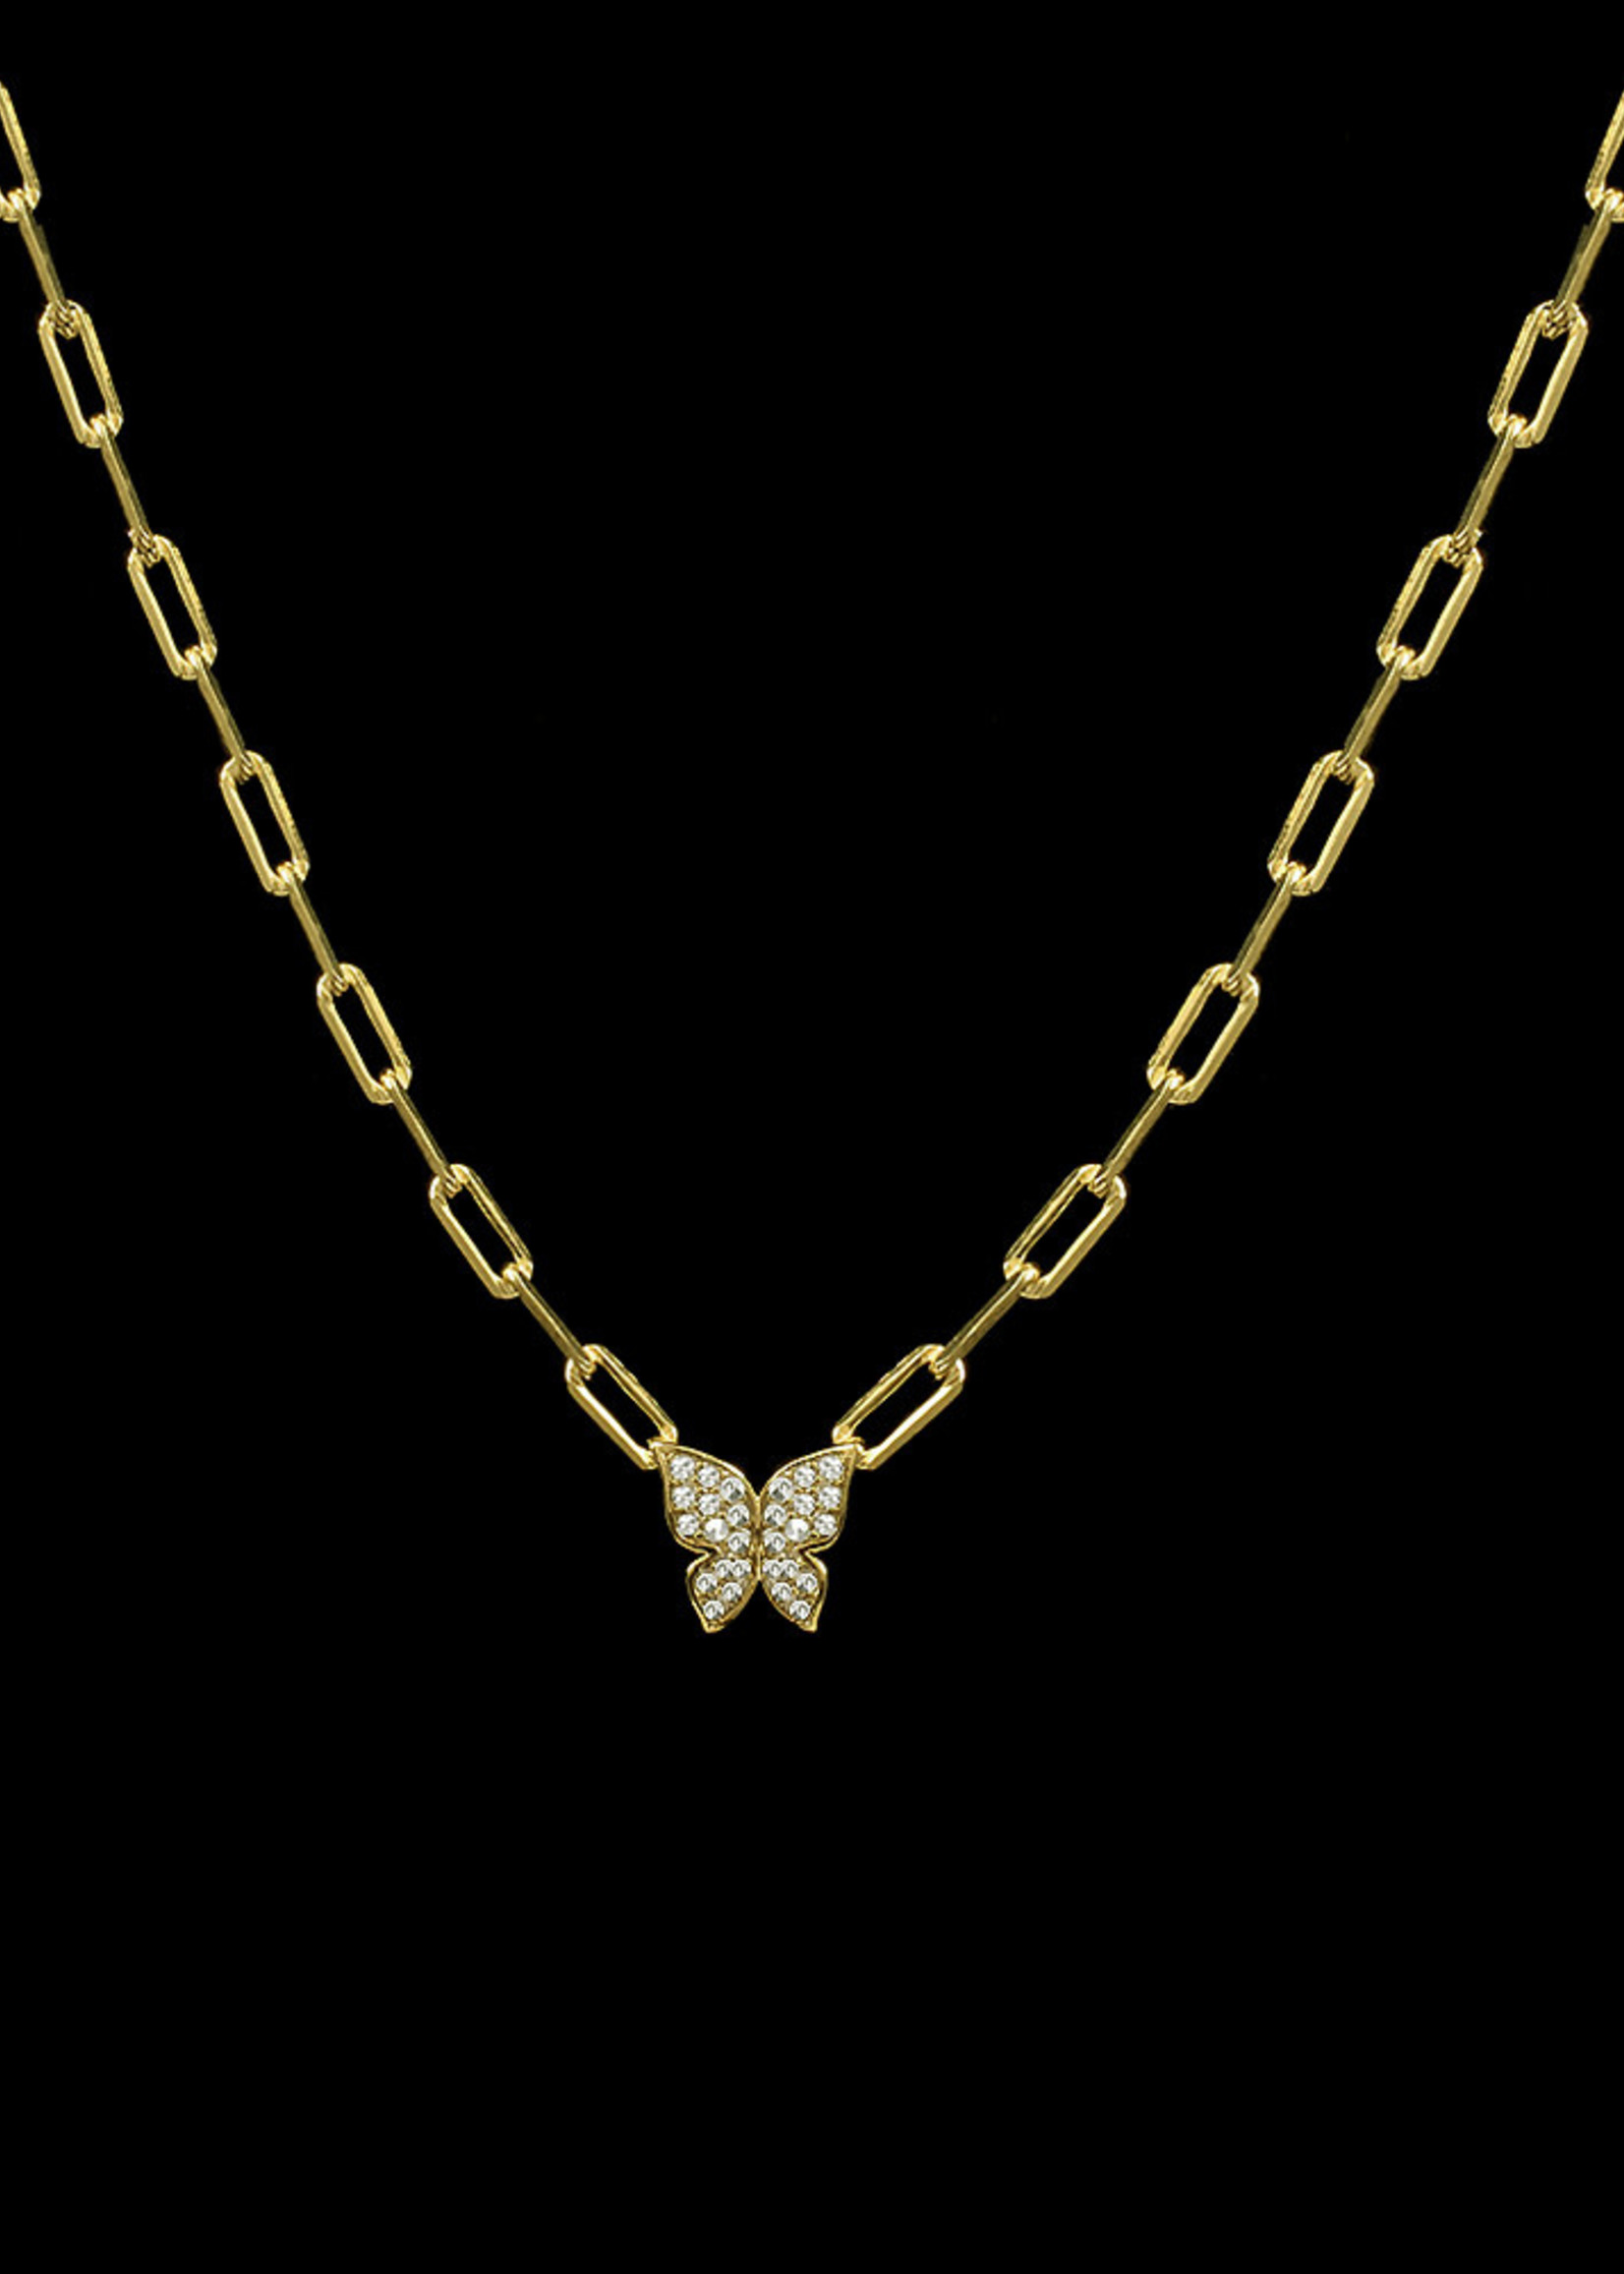 Be-Je Designs Beje - Small Butterfly Necklace (AK000164N)